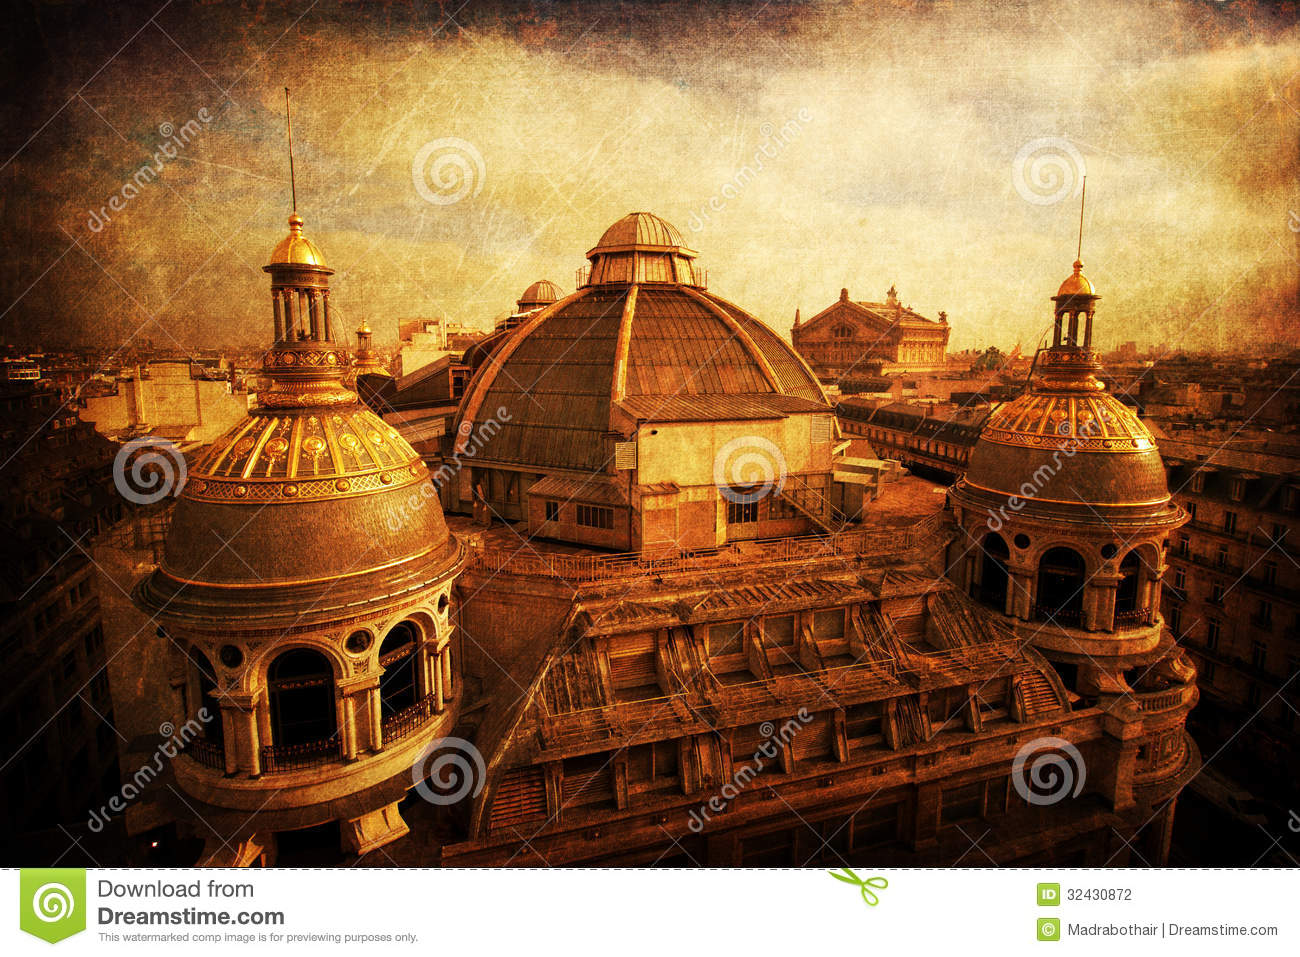 roofs of historical buildings with vintage style texture